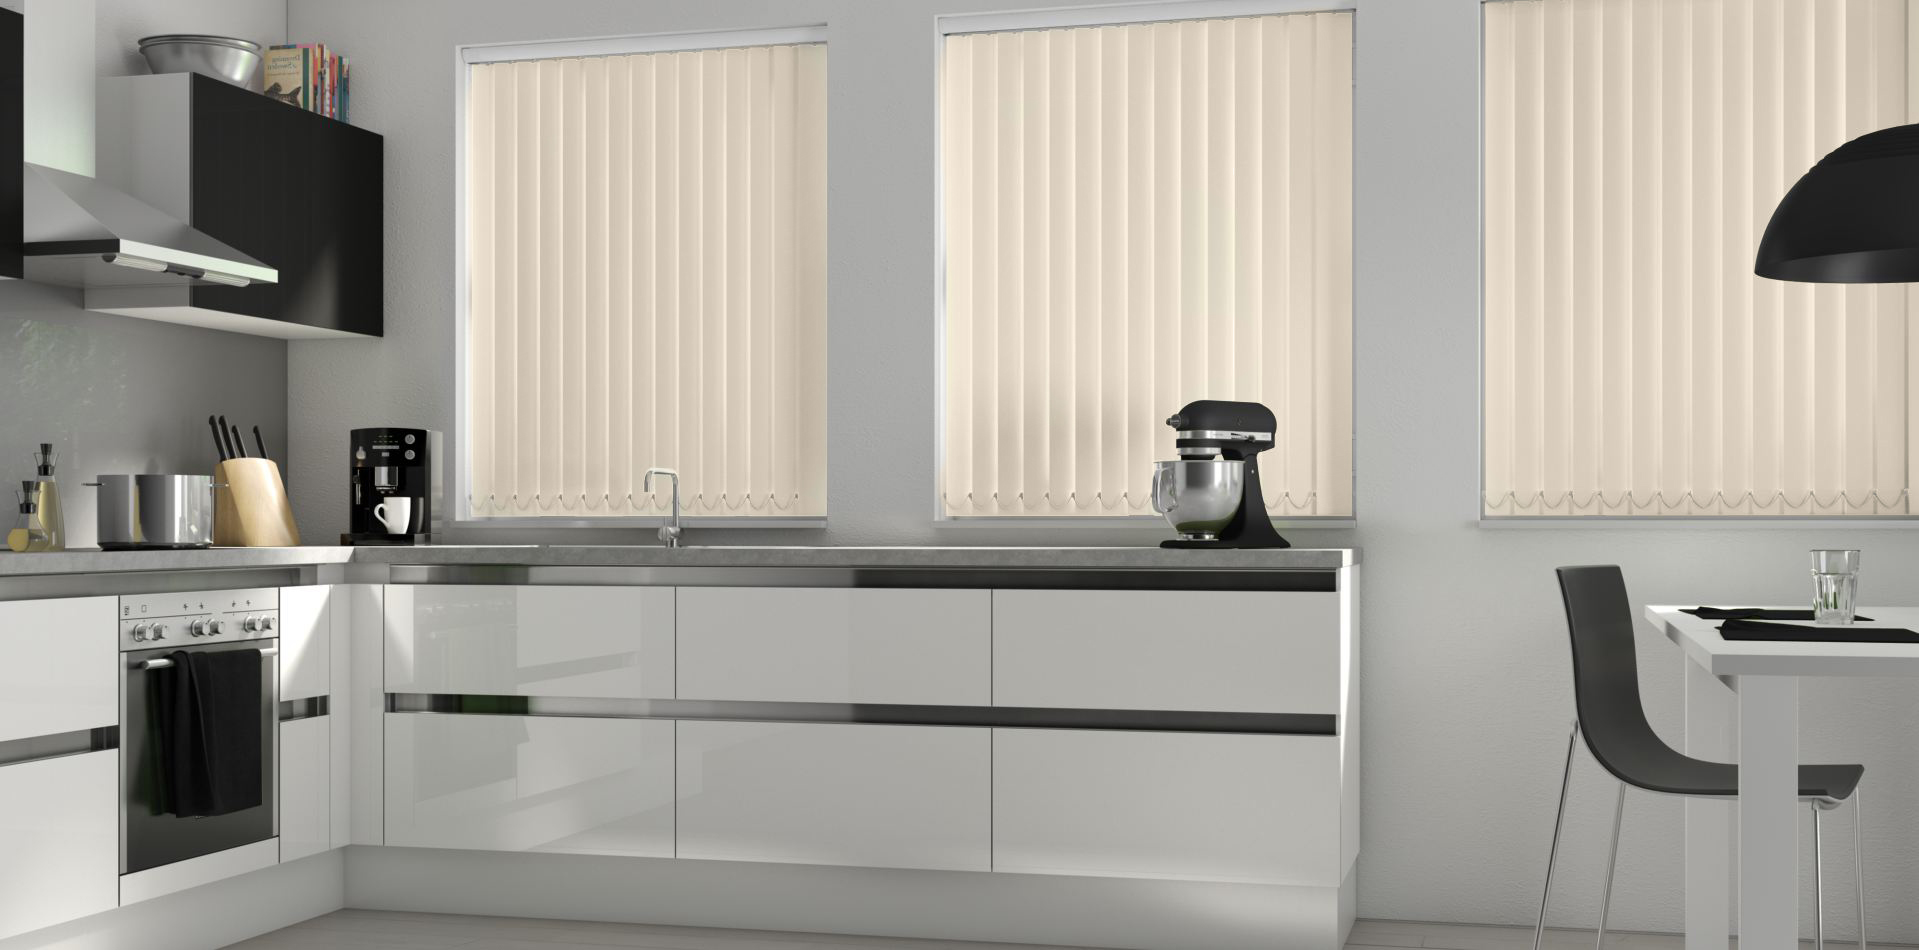 Three Guardian Parchment Vertical blinds in a kitchen